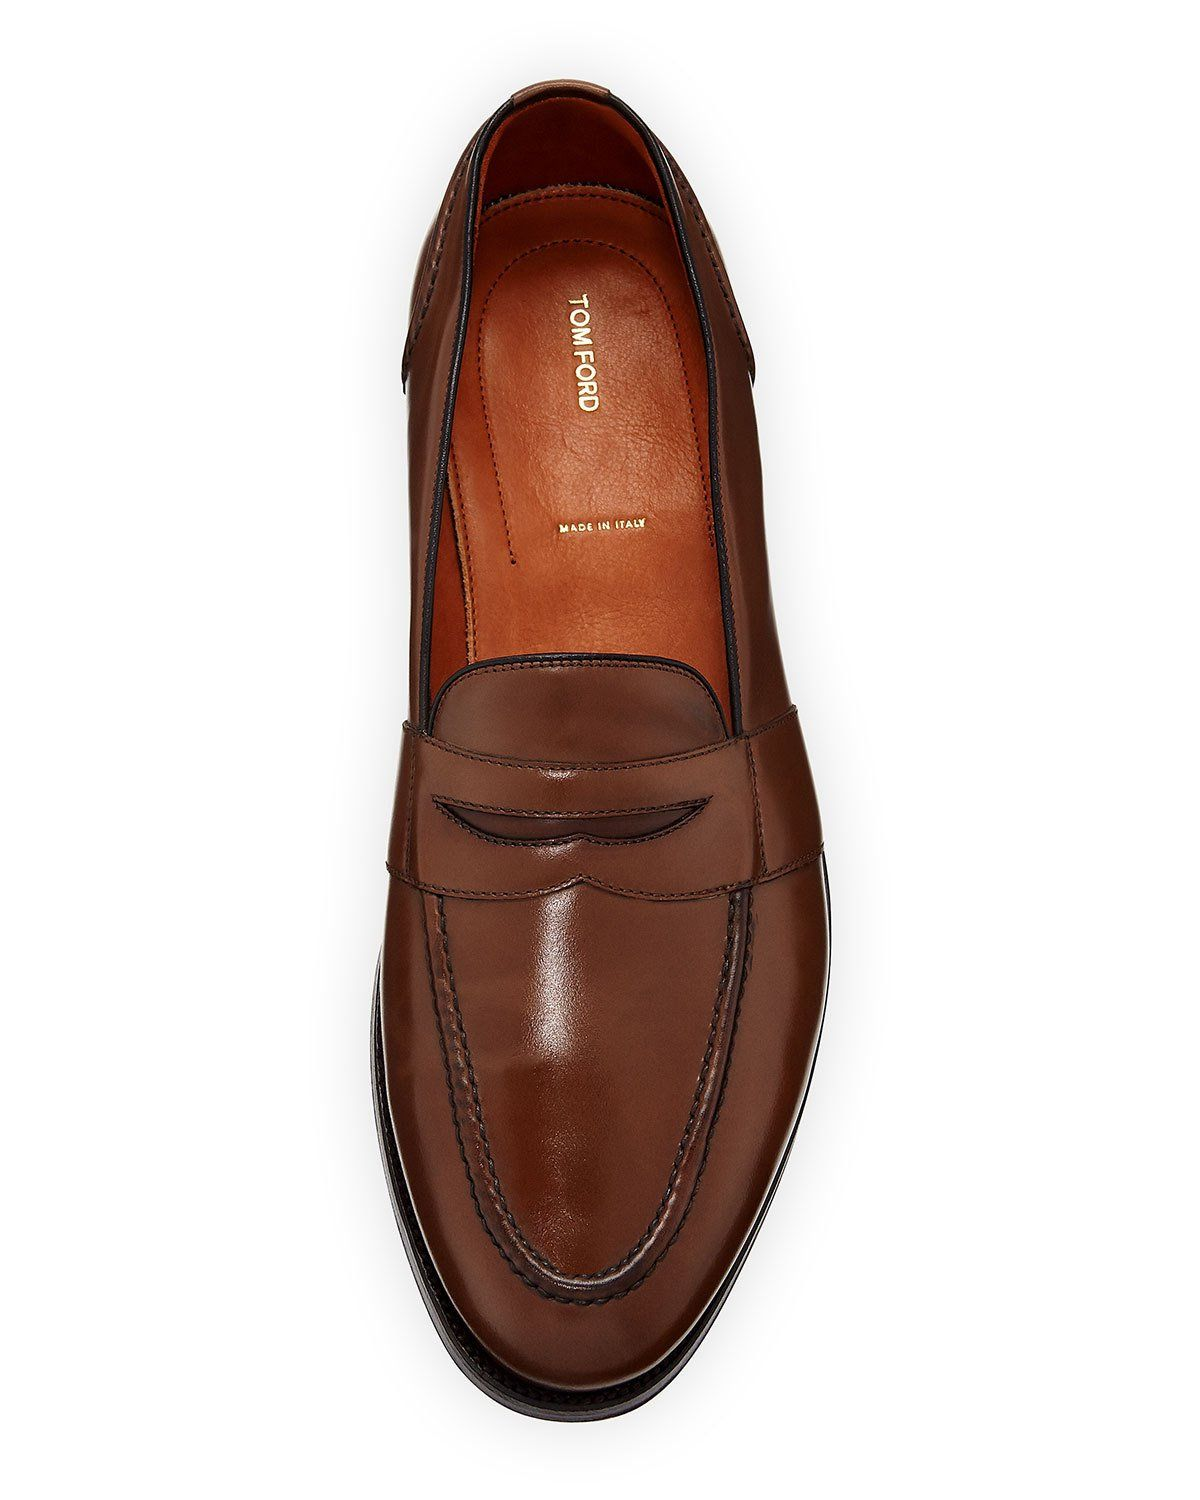 d32d44f2633 Tom Ford Calf Leather Penny Loafer